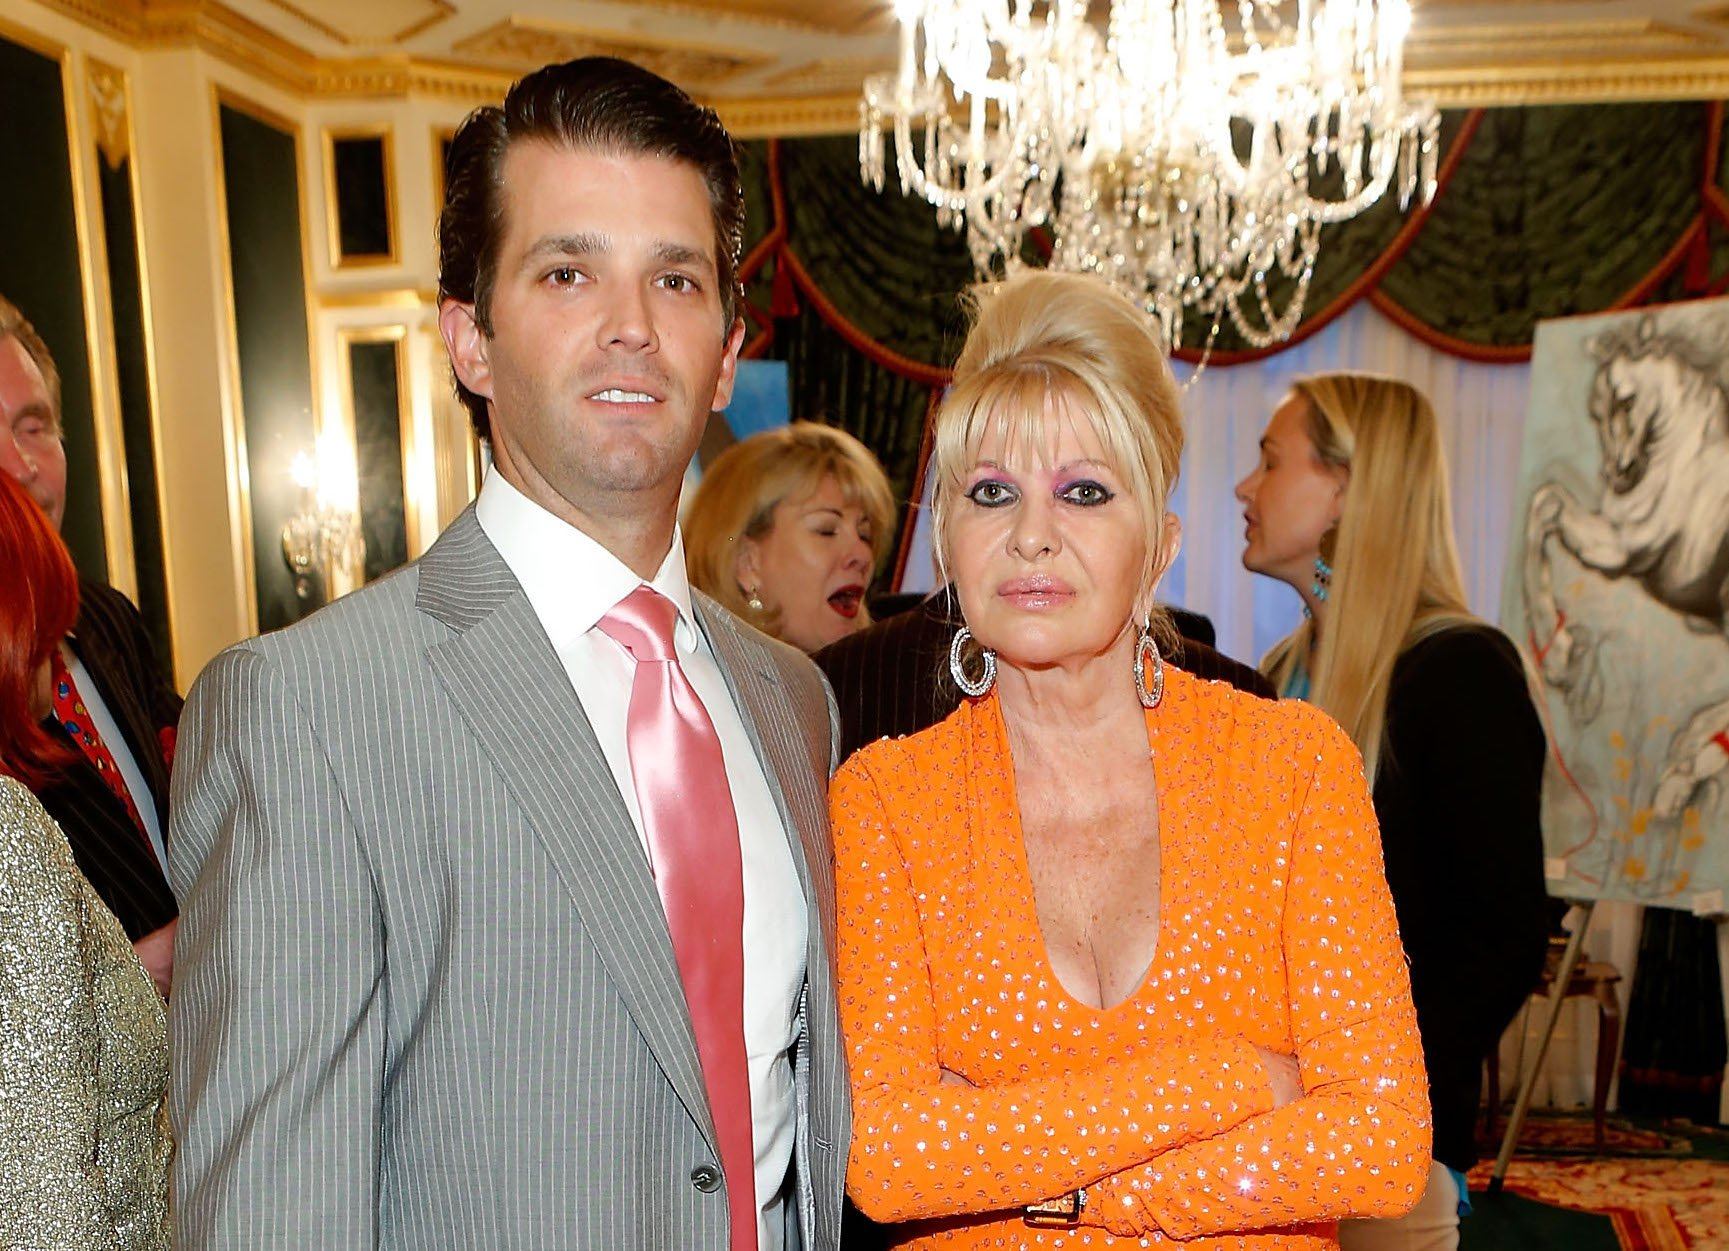 The Most Bizarre and Insulting Things Donald Trump Has Said About His Family